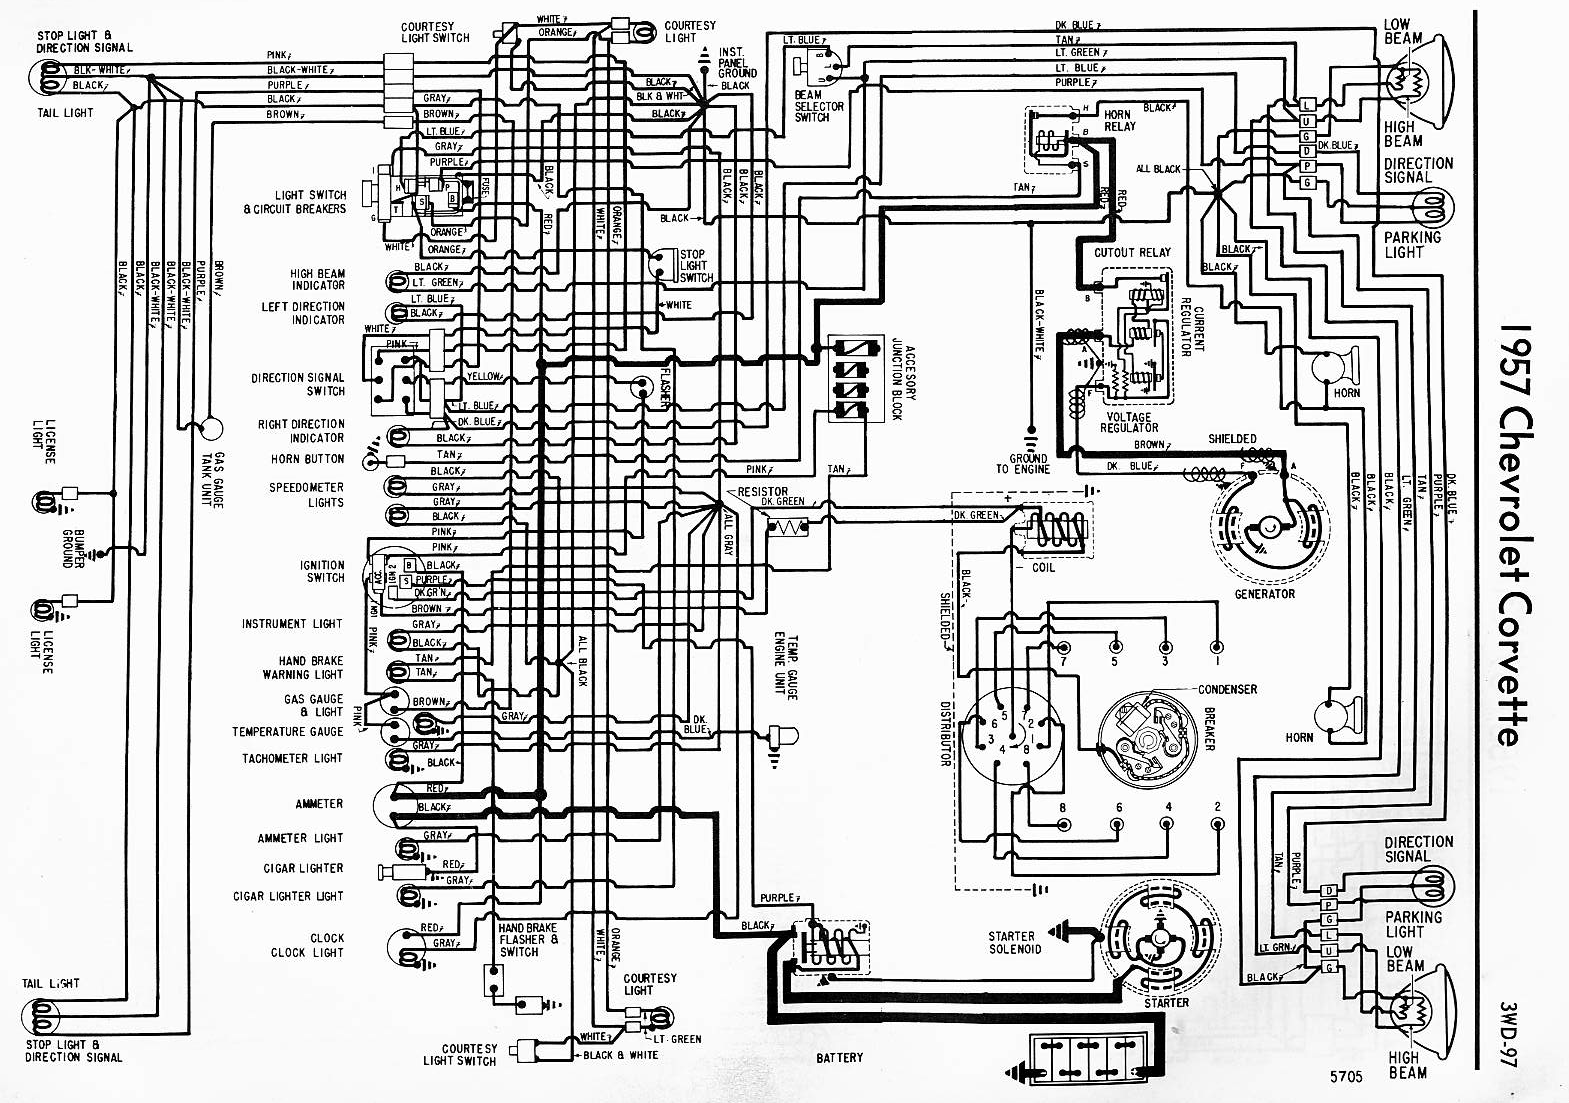 71 Corvette Wiper Wiring Diagrams Just Another Diagram Blog Gm Switch 1971 Schema Rh 50 Justanotherbeautyblog De 1969 Windshield